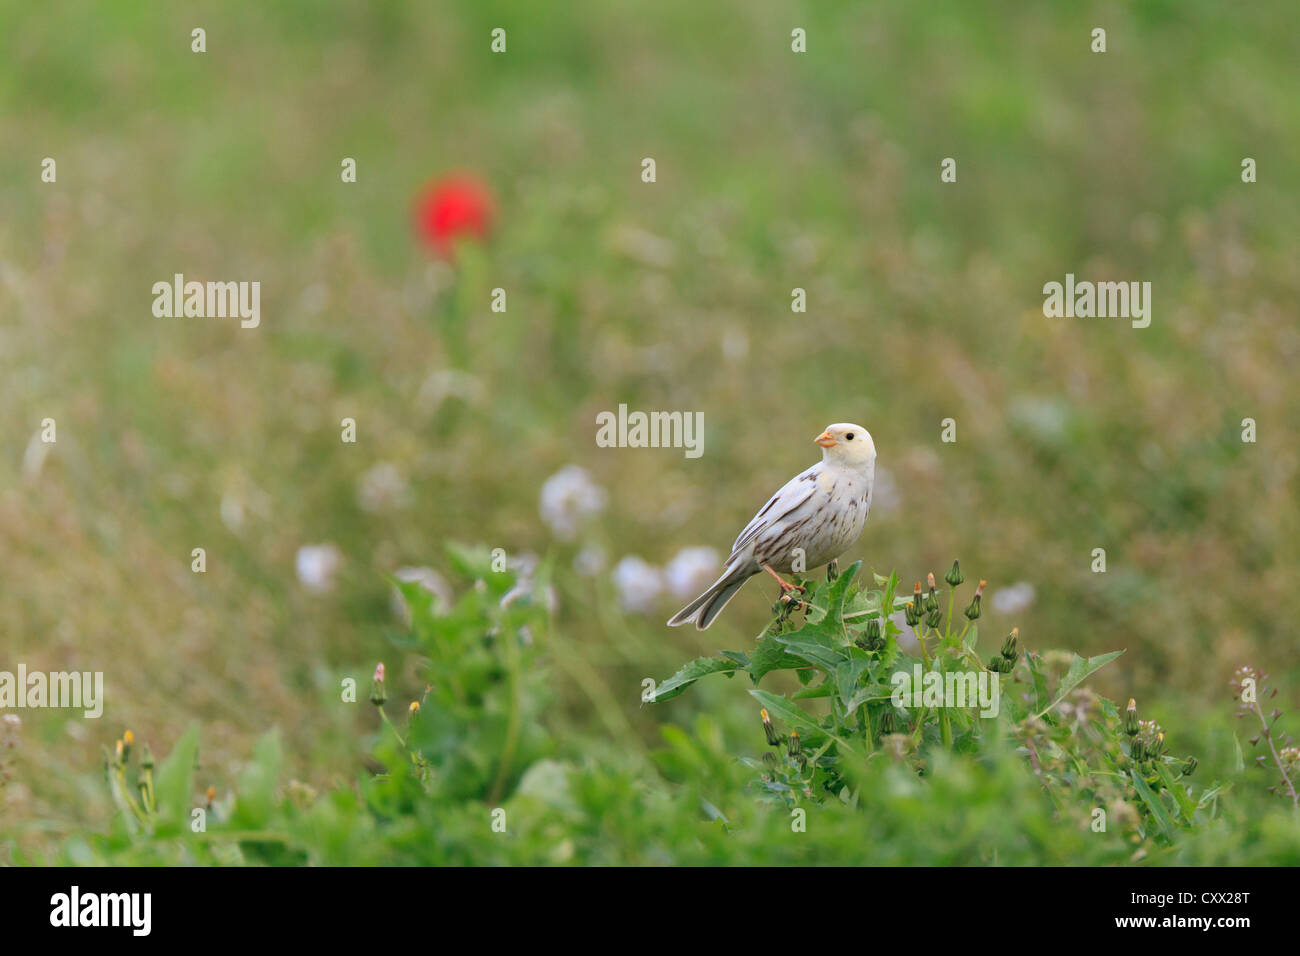 Partially leucistic Corn Bunting (Emberiza calandra) perched on bush. Lleida. Catalonia. Spain. - Stock Image